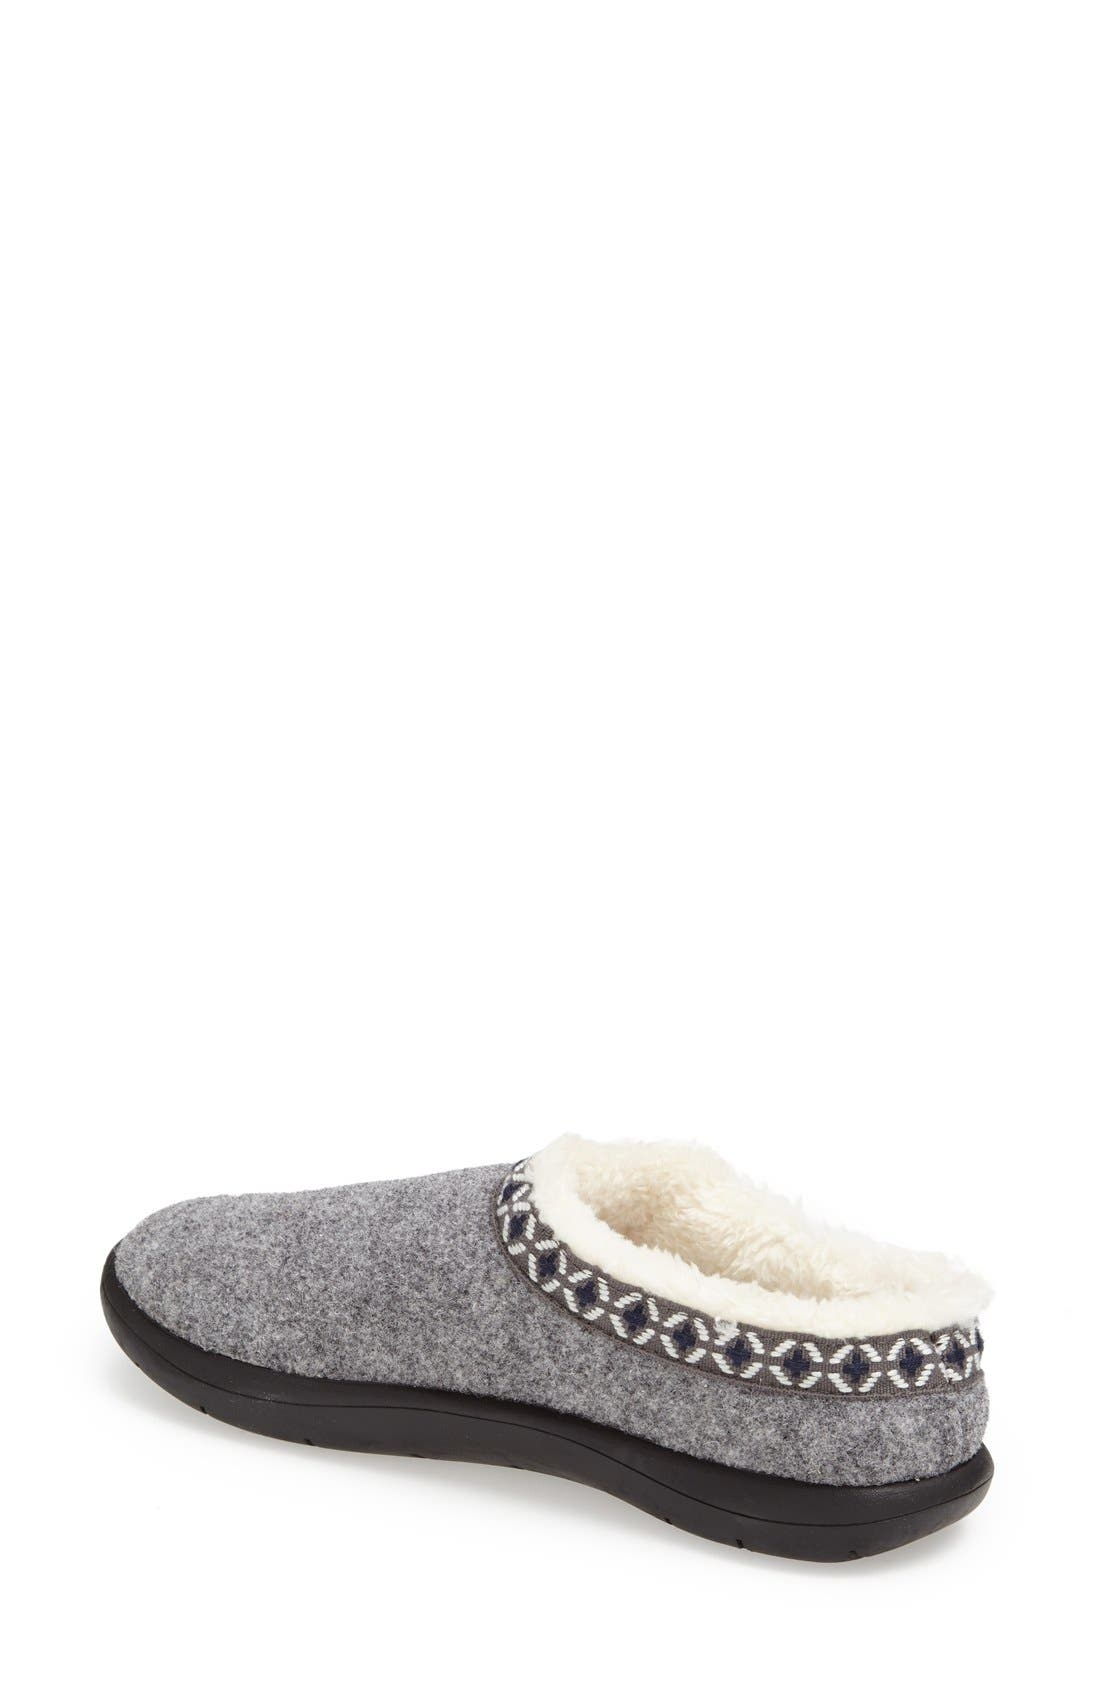 Alternate Image 2  - Tempur-Pedic® 'Subartic' Slipper (Women)